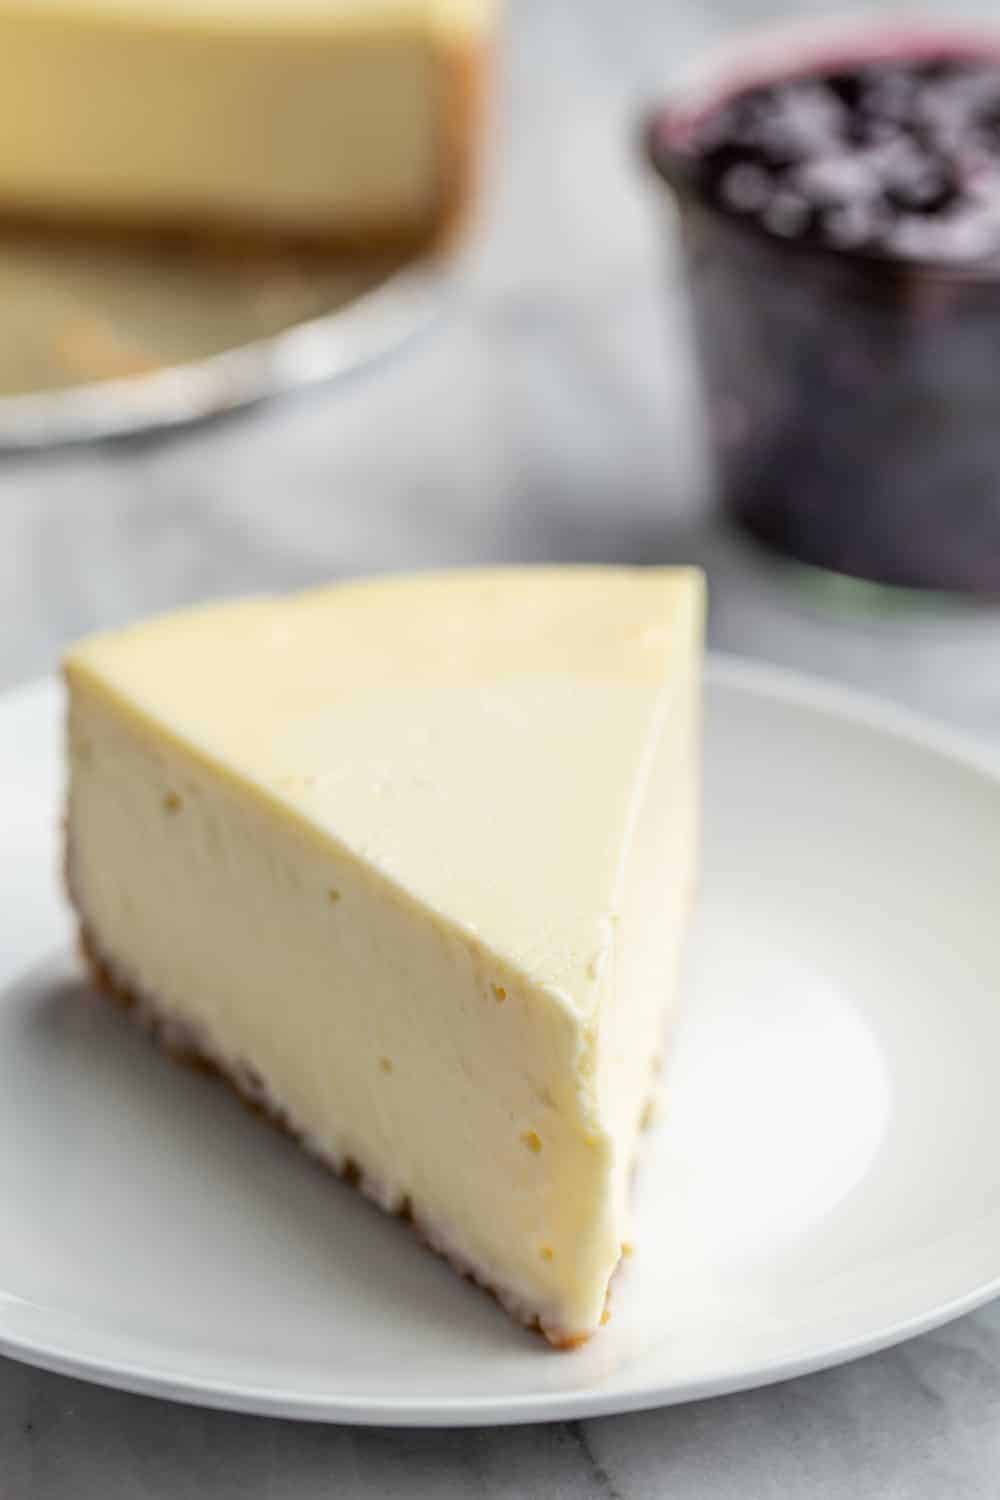 Slice of plain vanilla cheesecake on a white plate